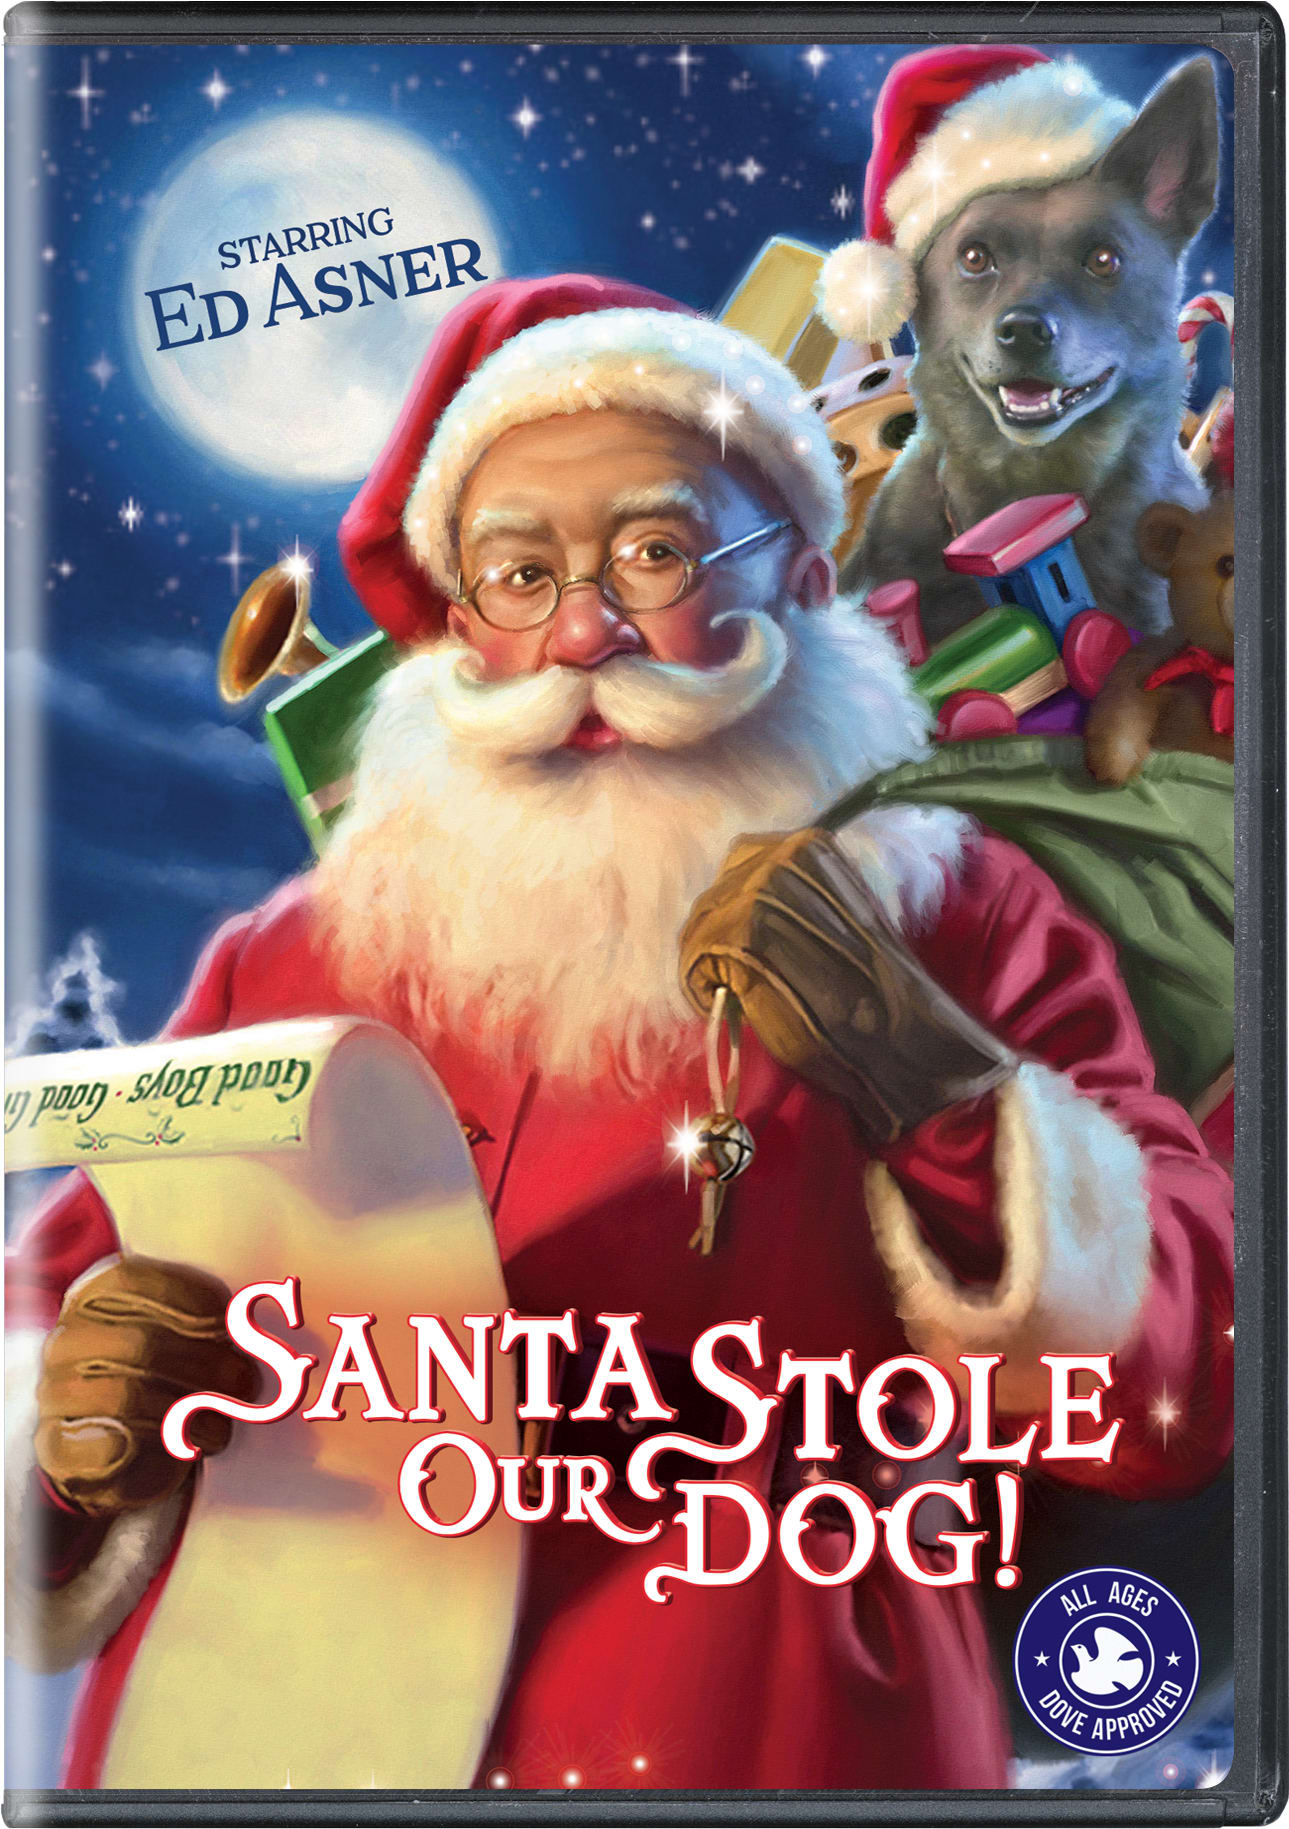 Santa Stole Our Dog! [DVD]